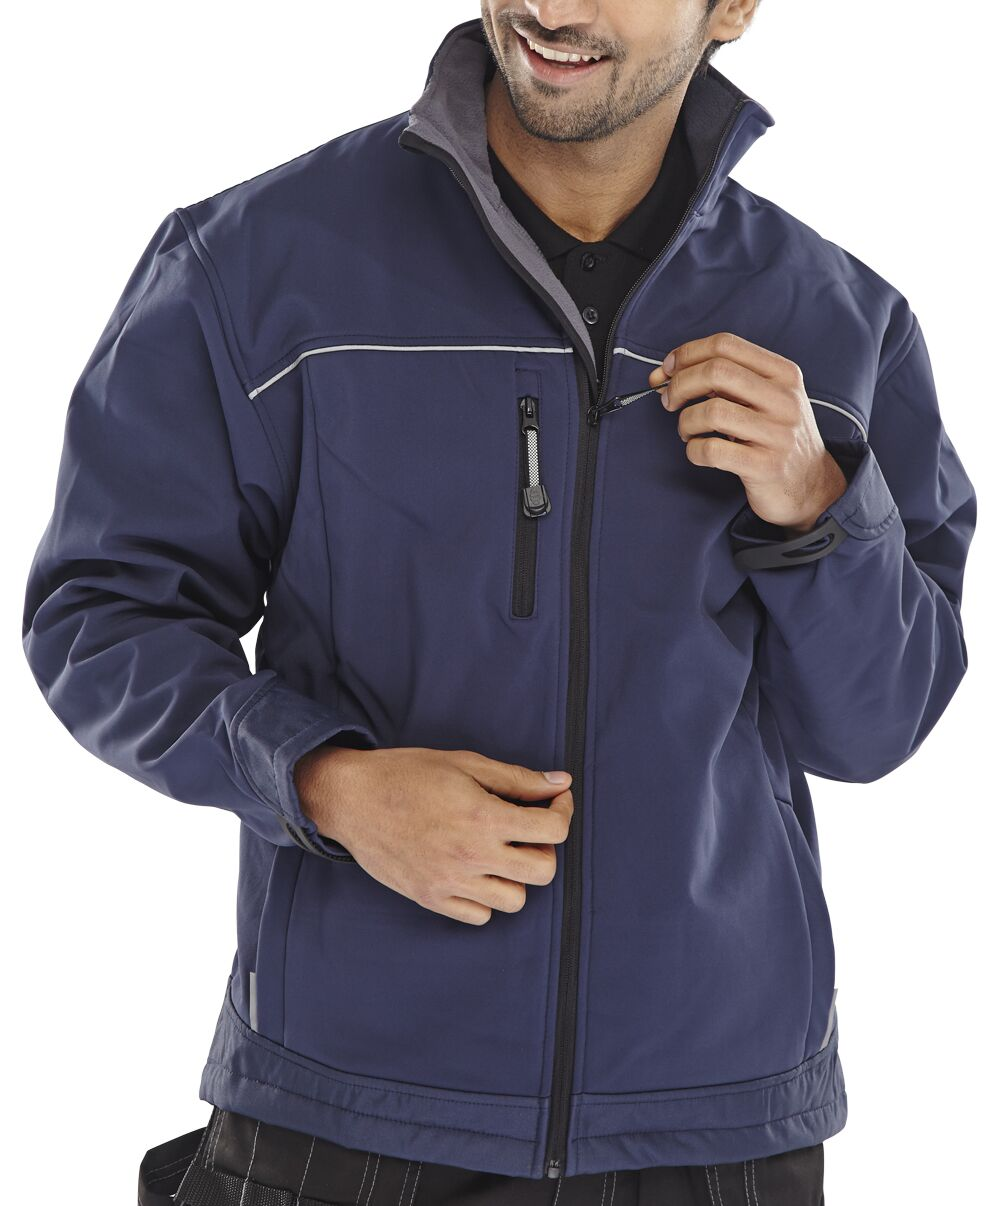 Soft Shell Click Workwear Soft Shell Jacket Water Resistant Windproof 5XL Navy Ref SSJN5XL *Approx 3 Day Leadtime*